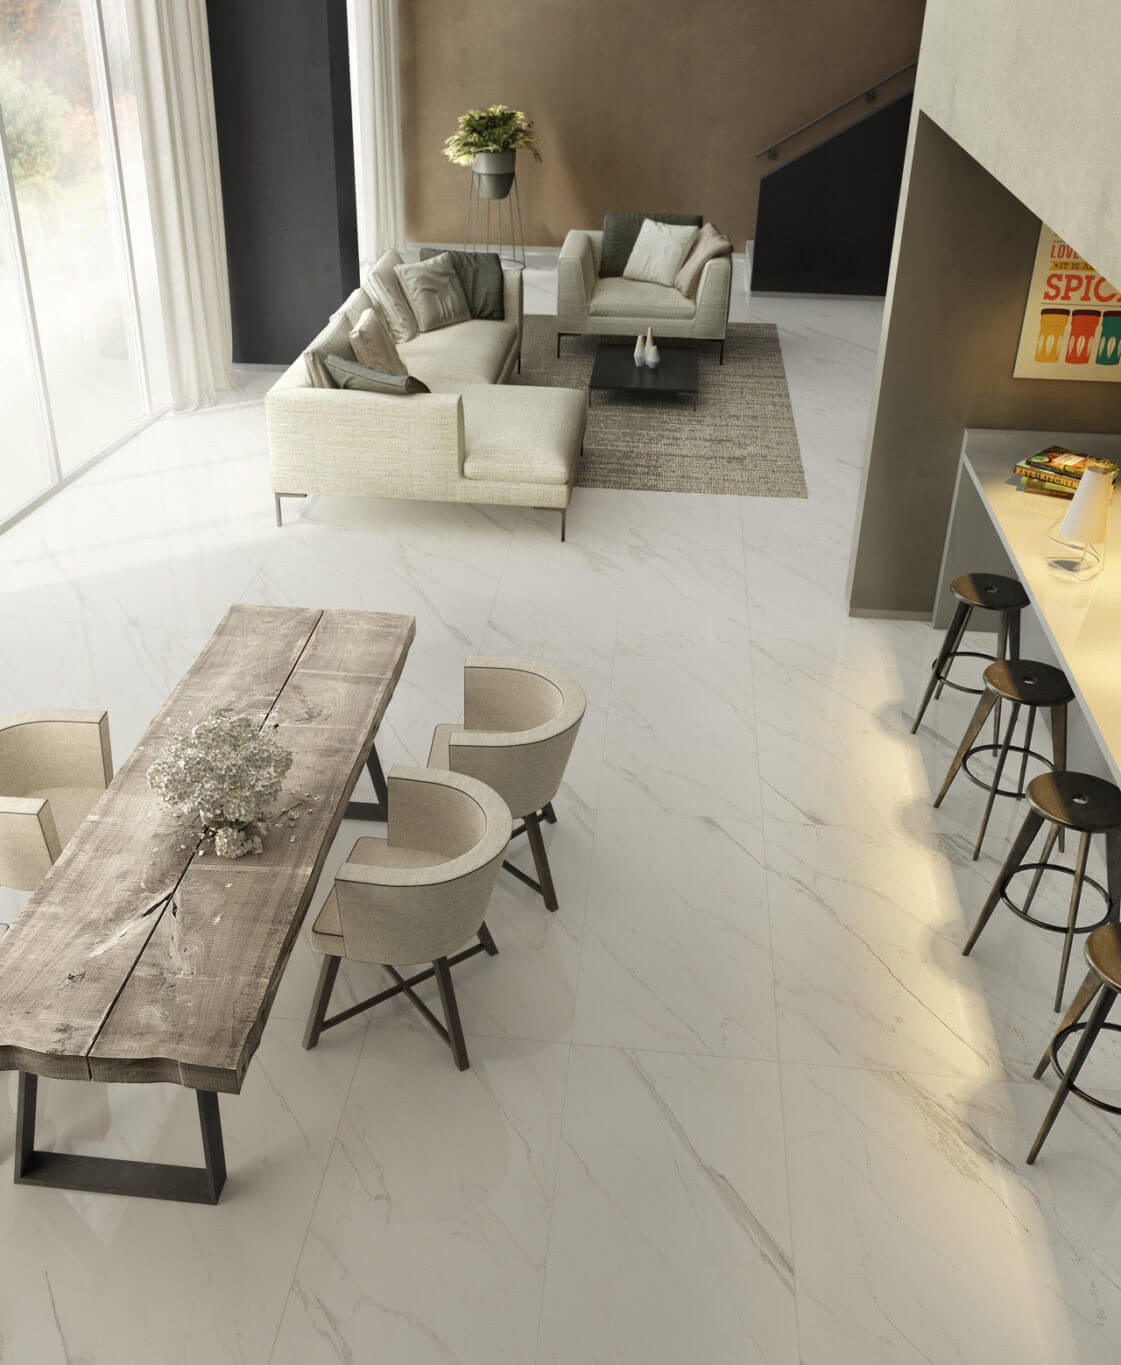 Living space with white marble-look tile flooring